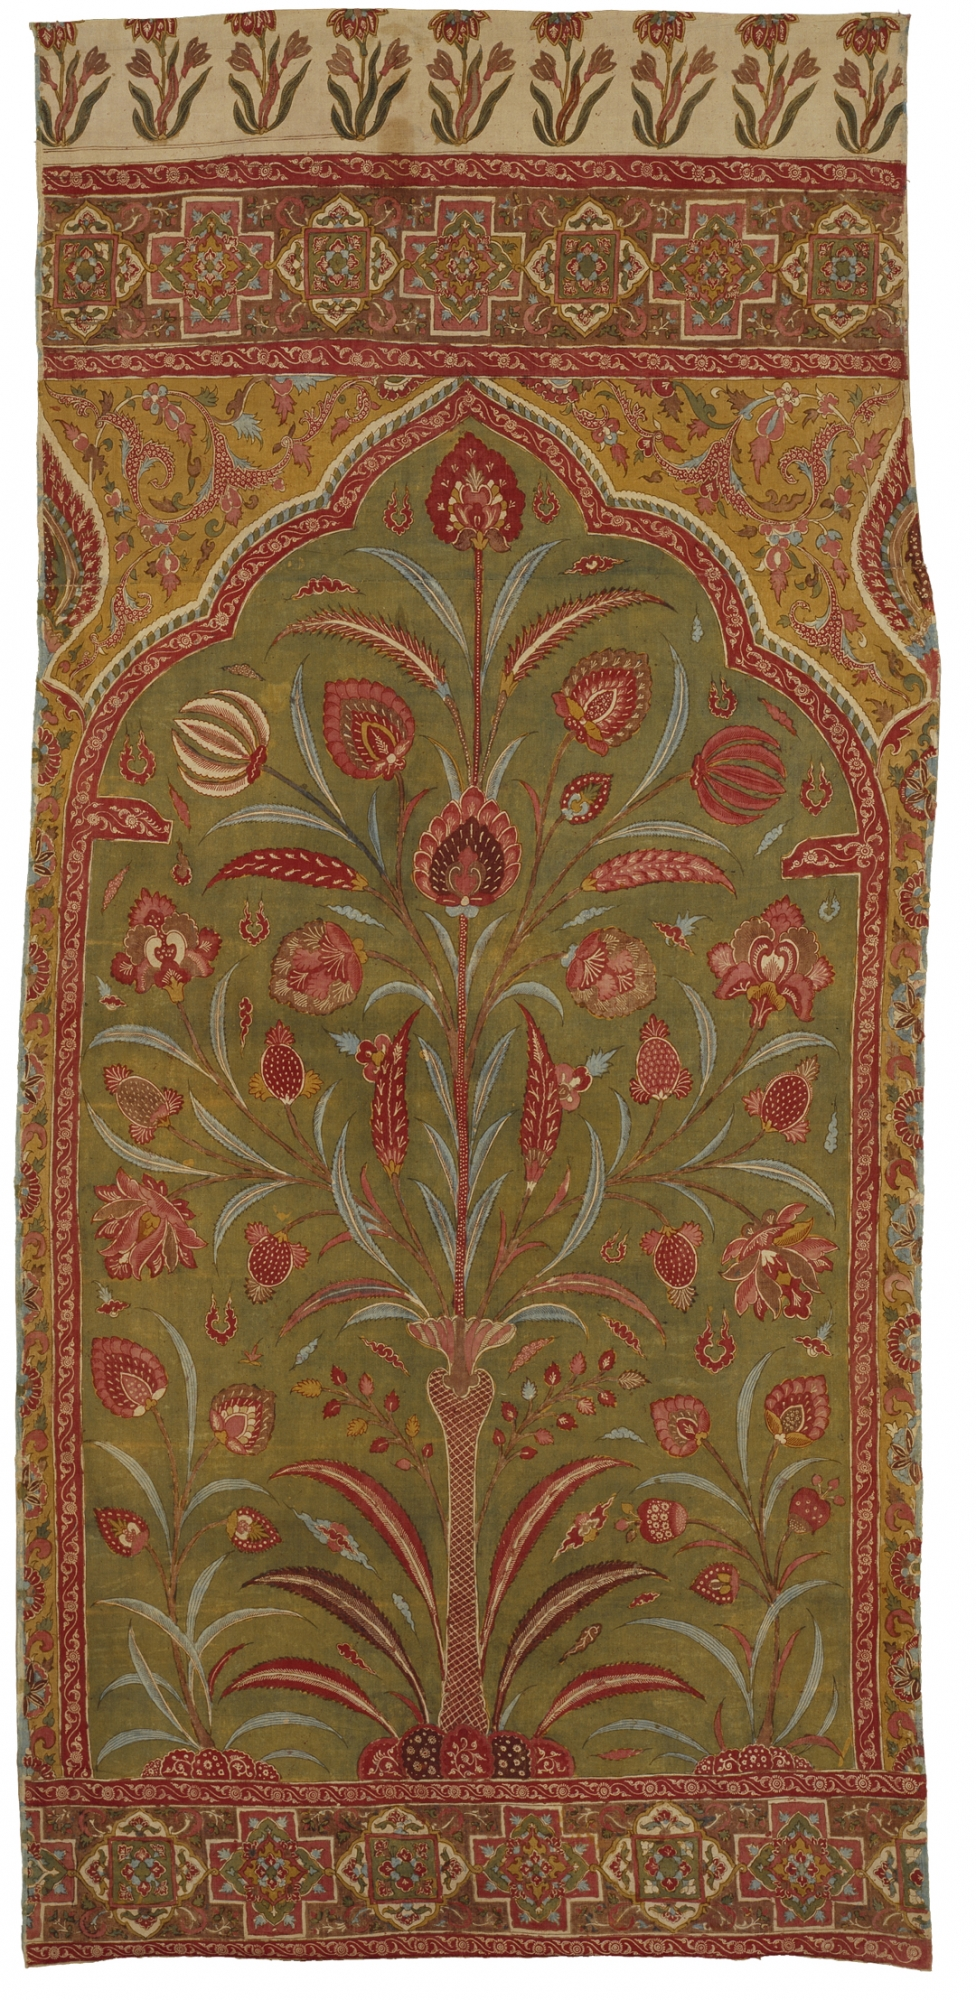 Textile with design of niche and central floral tree